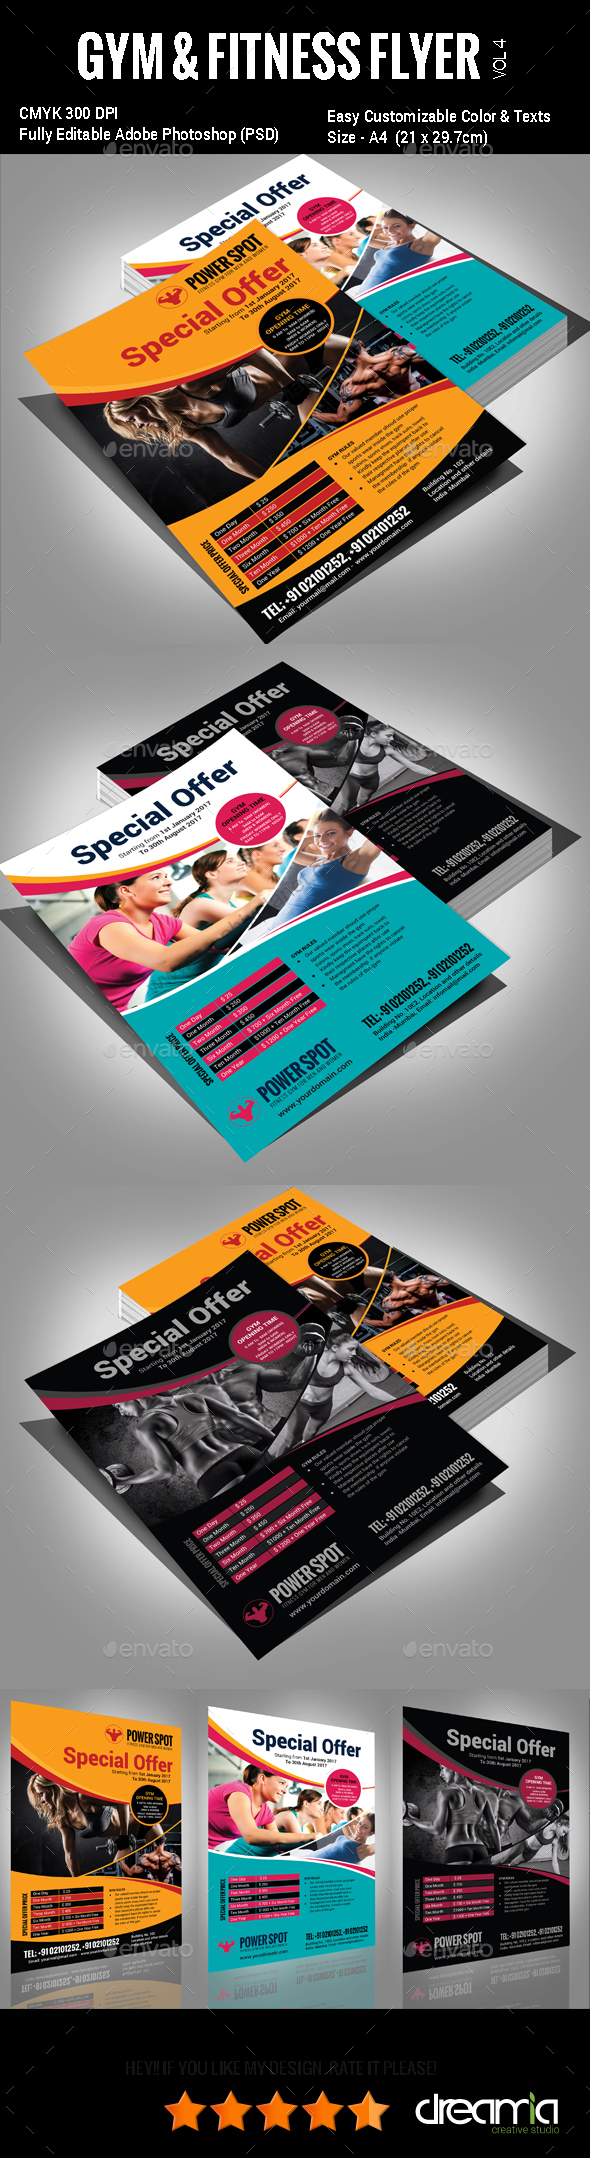 Gym & Fitness Flyer - Vol3 - Sports Events